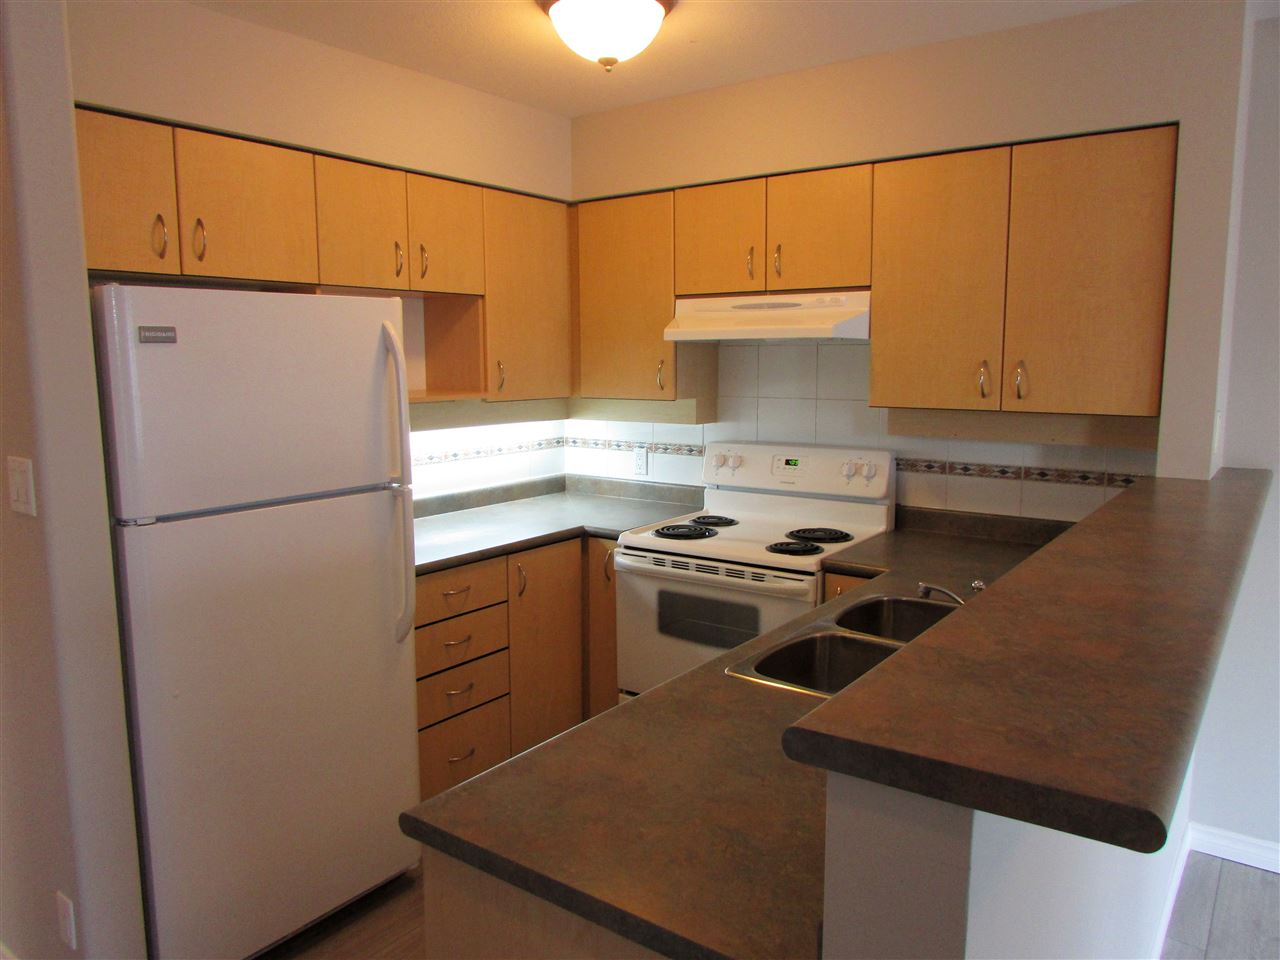 "Photo 6: 315 522 SMITH Avenue in Coquitlam: Coquitlam West Condo for sale in ""SEDONA"" : MLS(r) # R2148678"